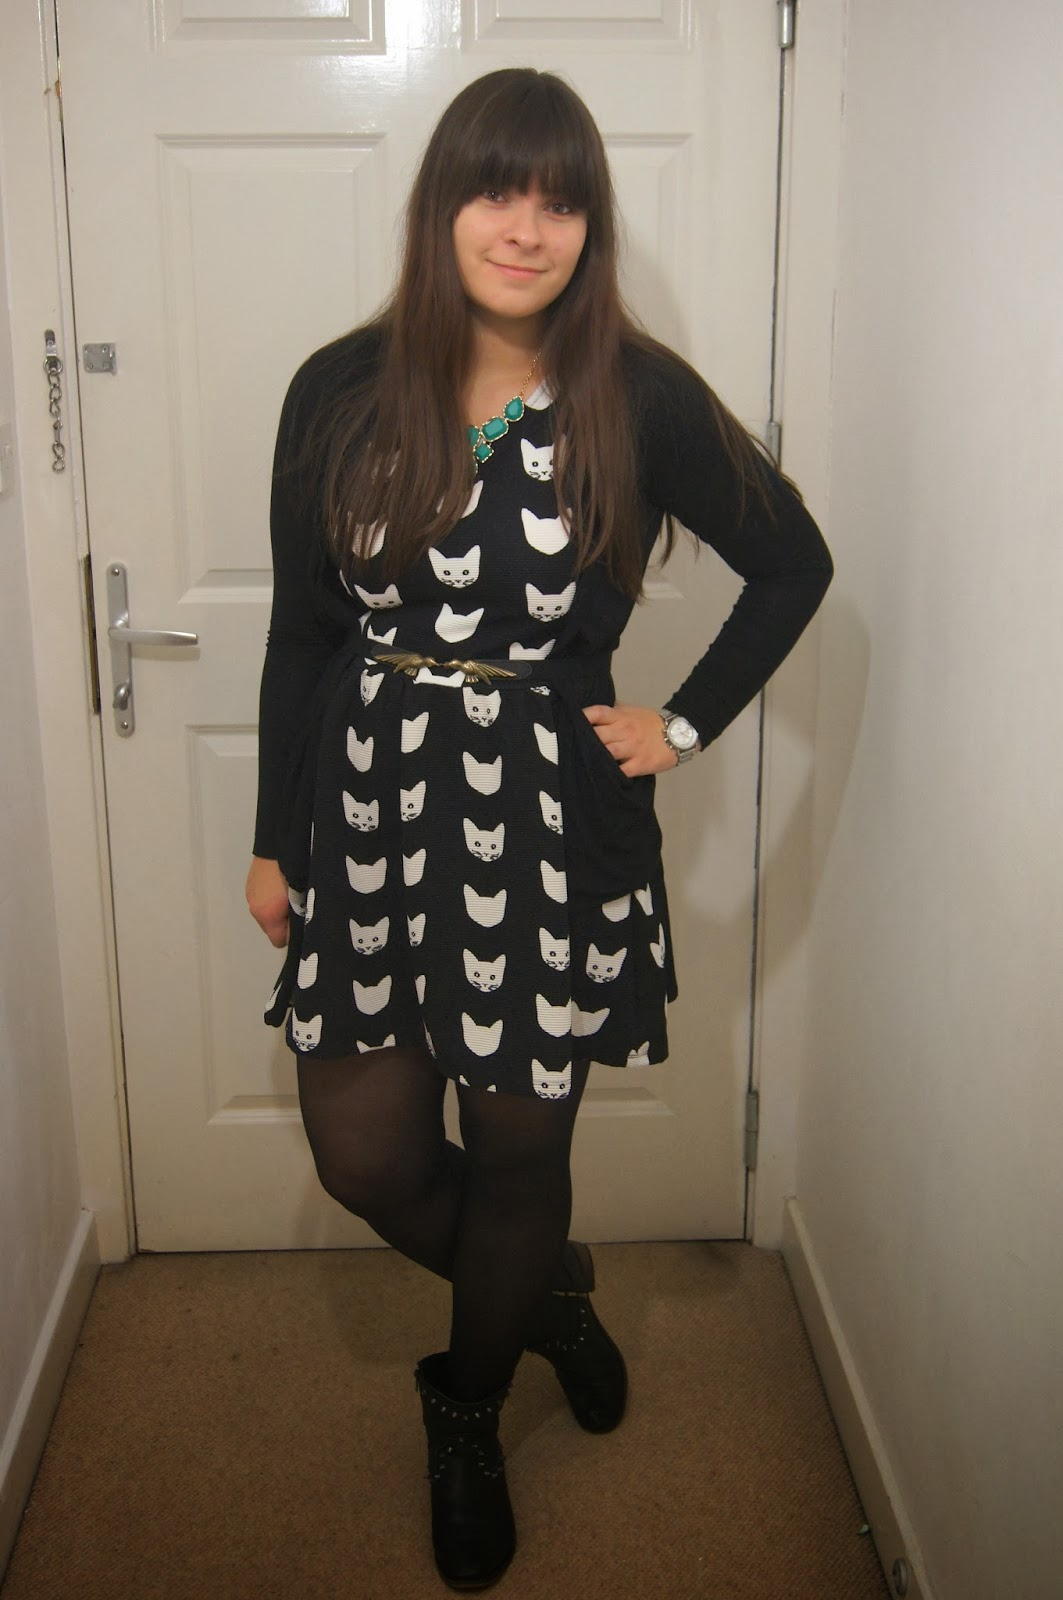 Outfit post: The monochrome cat dress of dreams